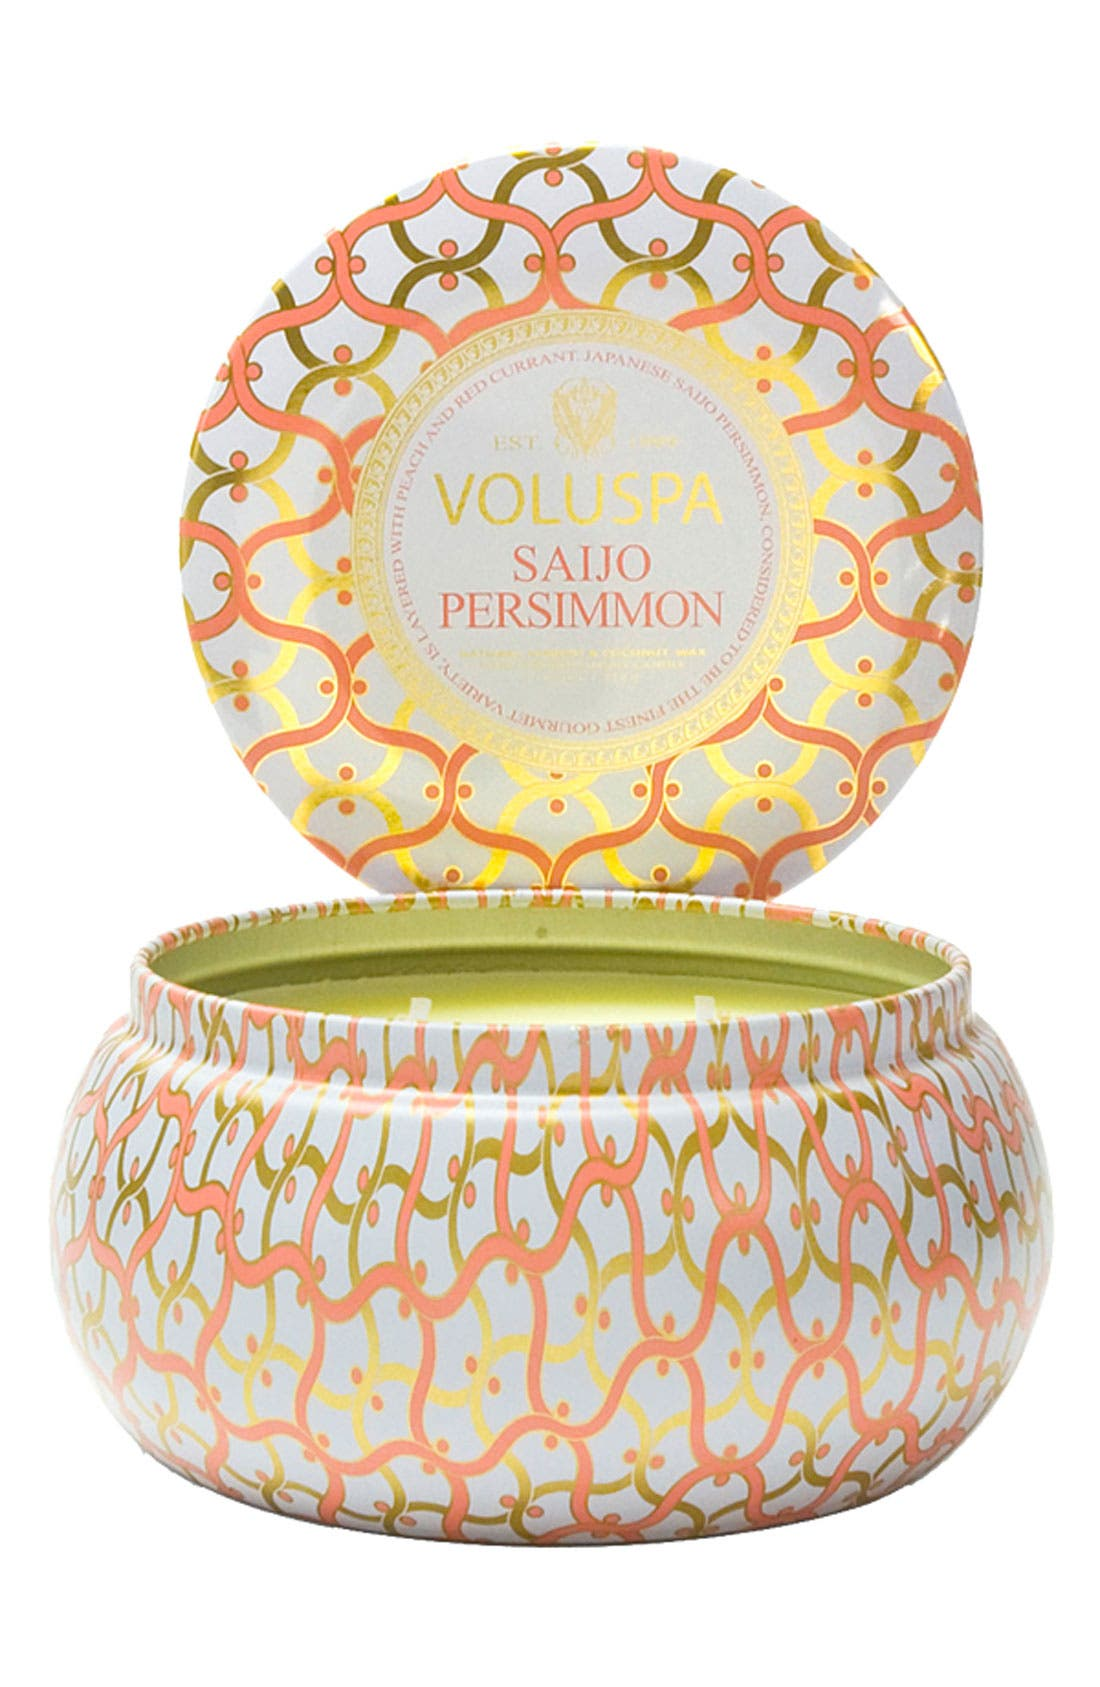 Alternate Image 1 Selected - Voluspa Maison Blanc Saijo Persimmon 2-Wick Candle